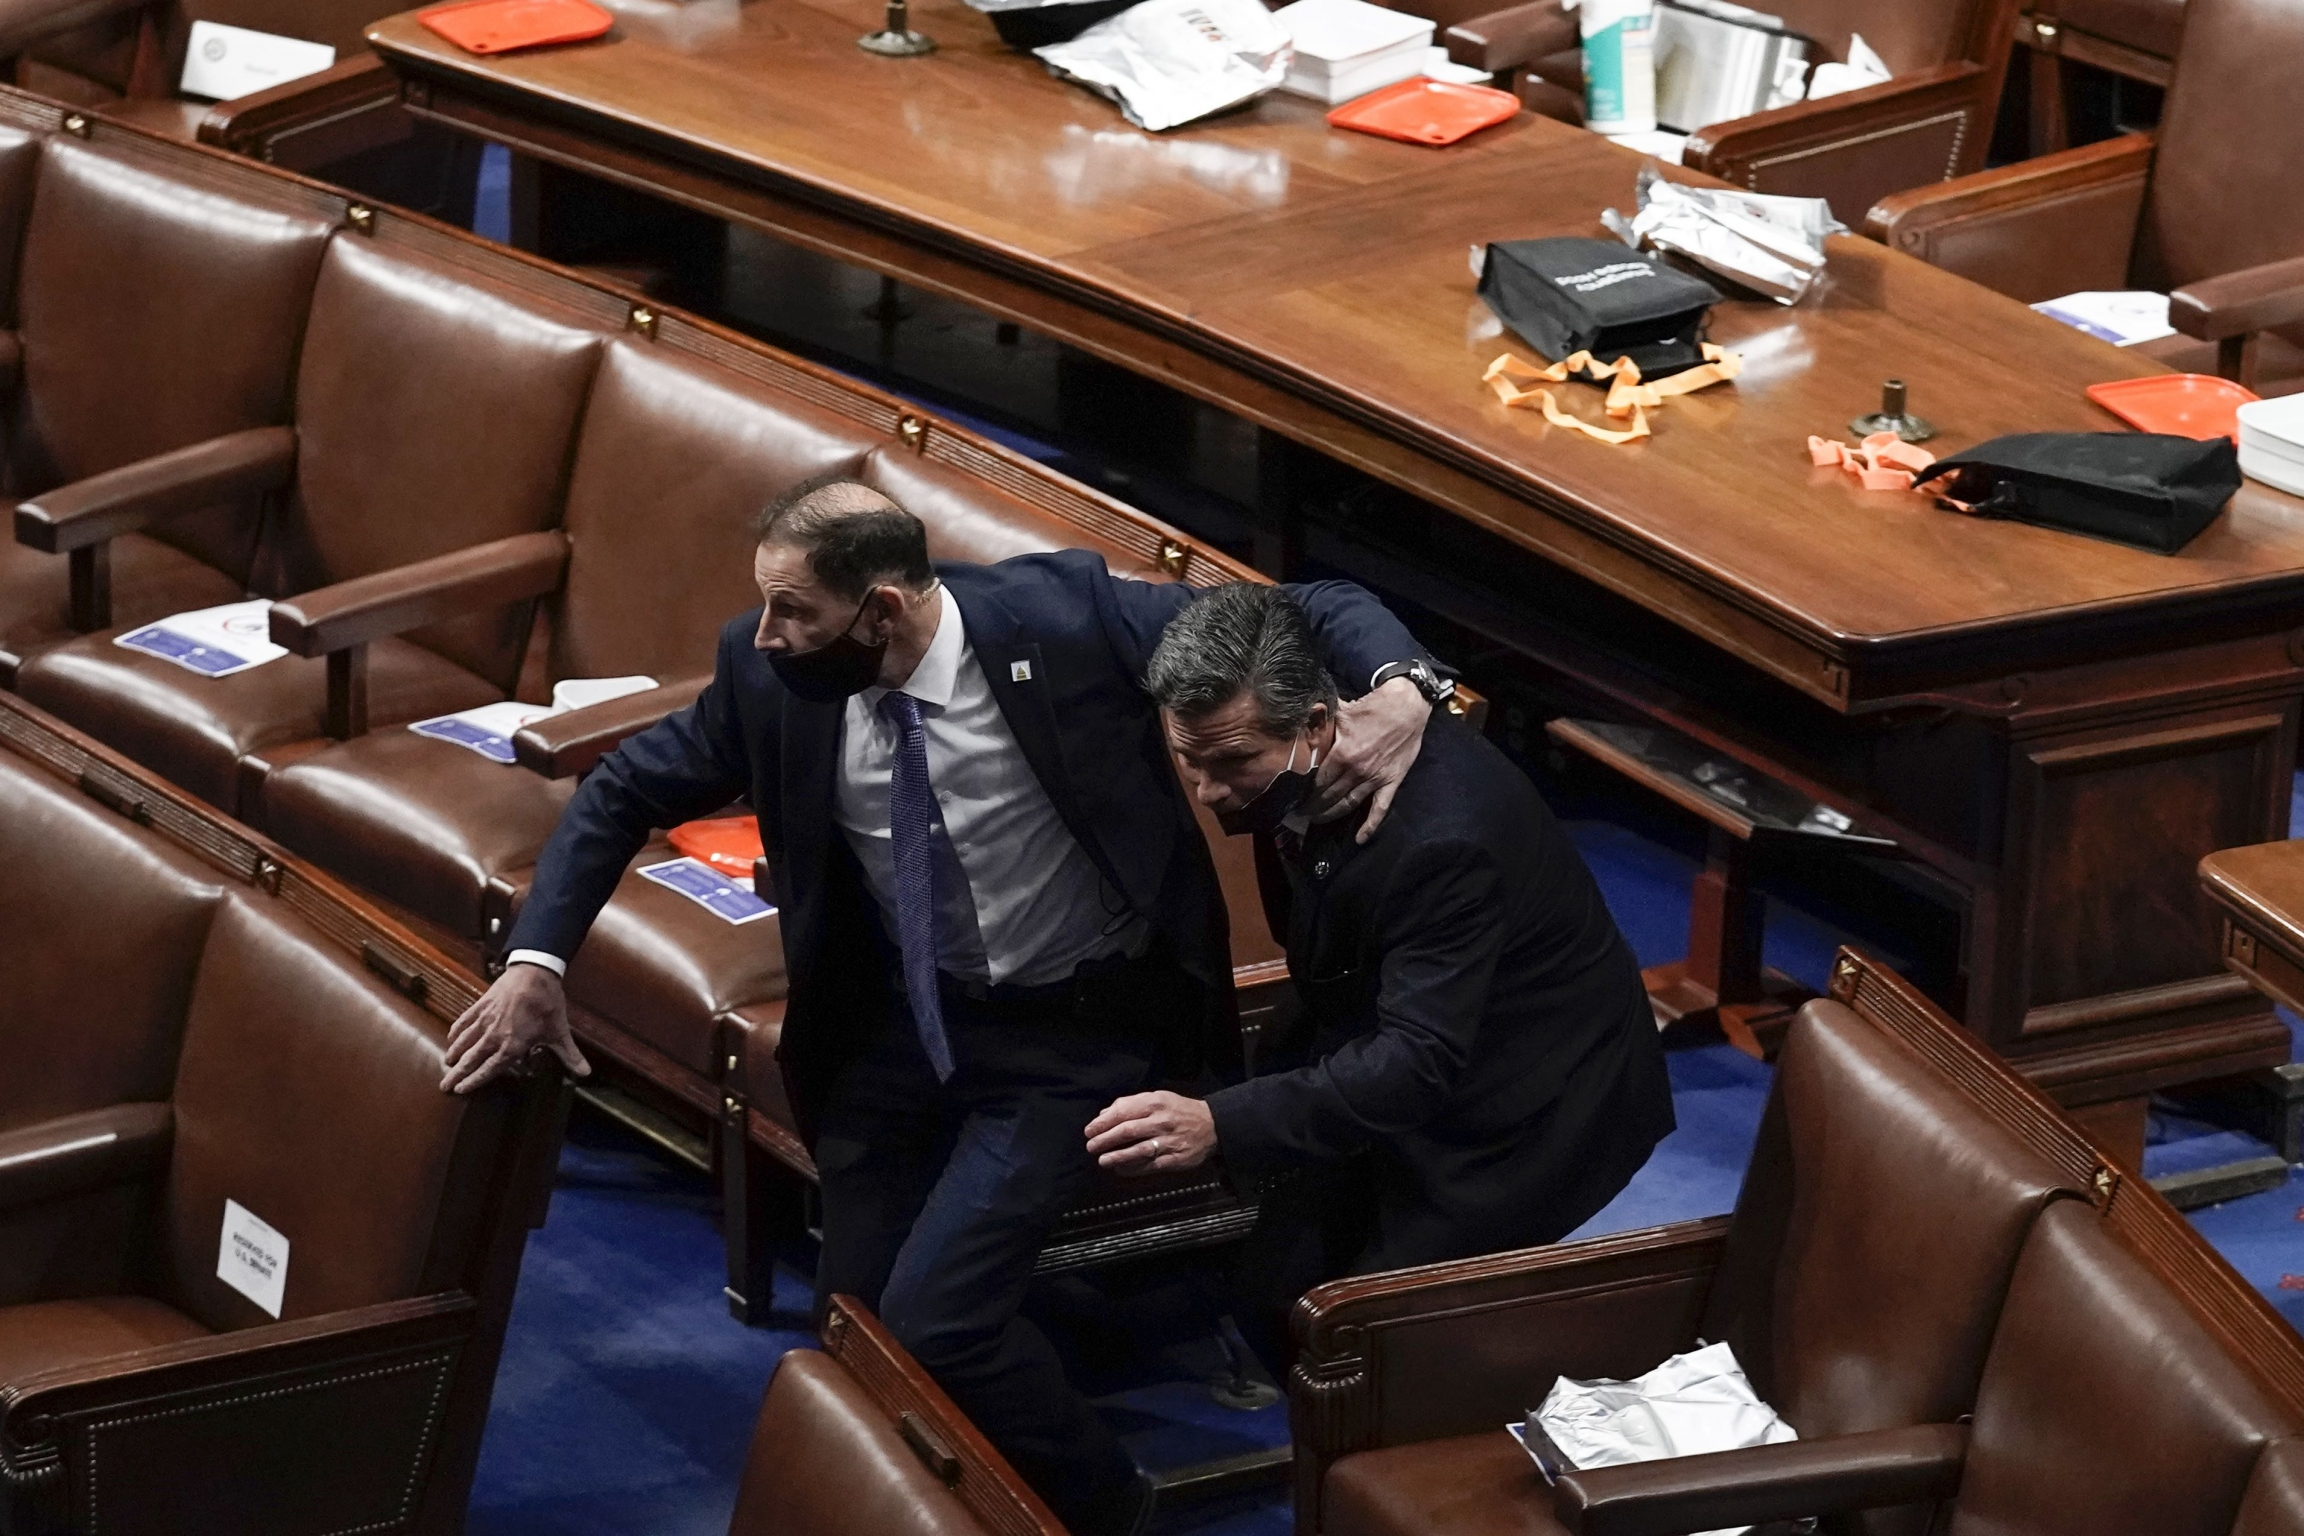 Two men in black suits run to evacuate the floor as a violent mobtriesto break into the House Chamber at the USCapitol